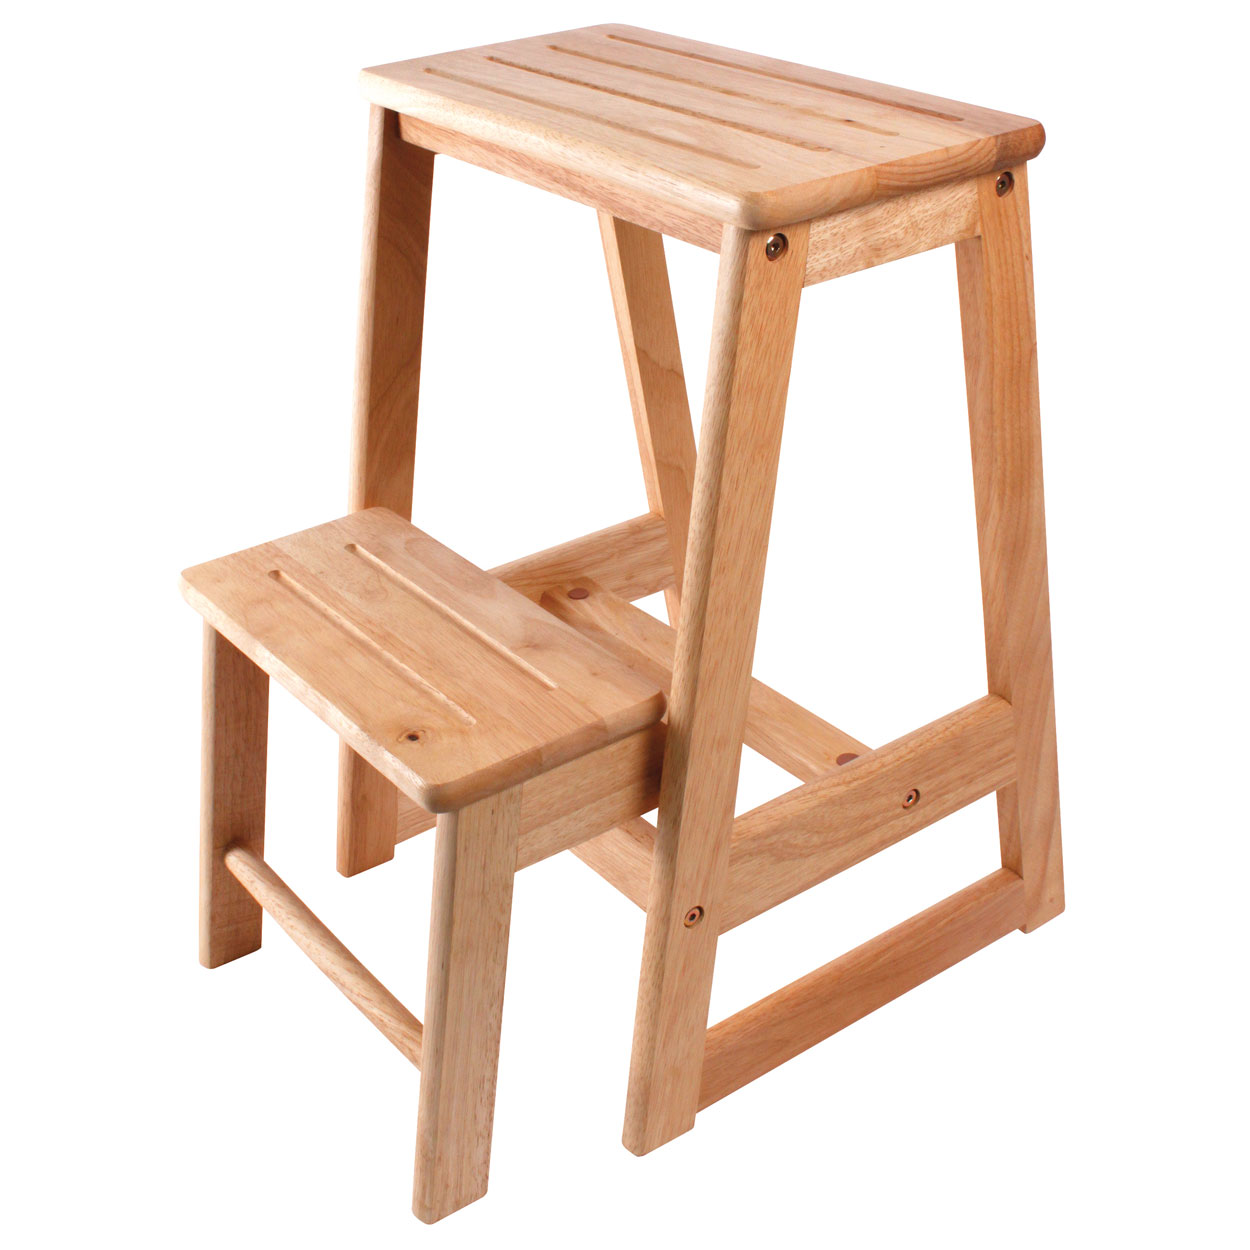 Two Step Wooden Stool  sc 1 st  Coopers of Stortford & Two Step Wooden Stool | Housewares | Coopers Of Stortford islam-shia.org